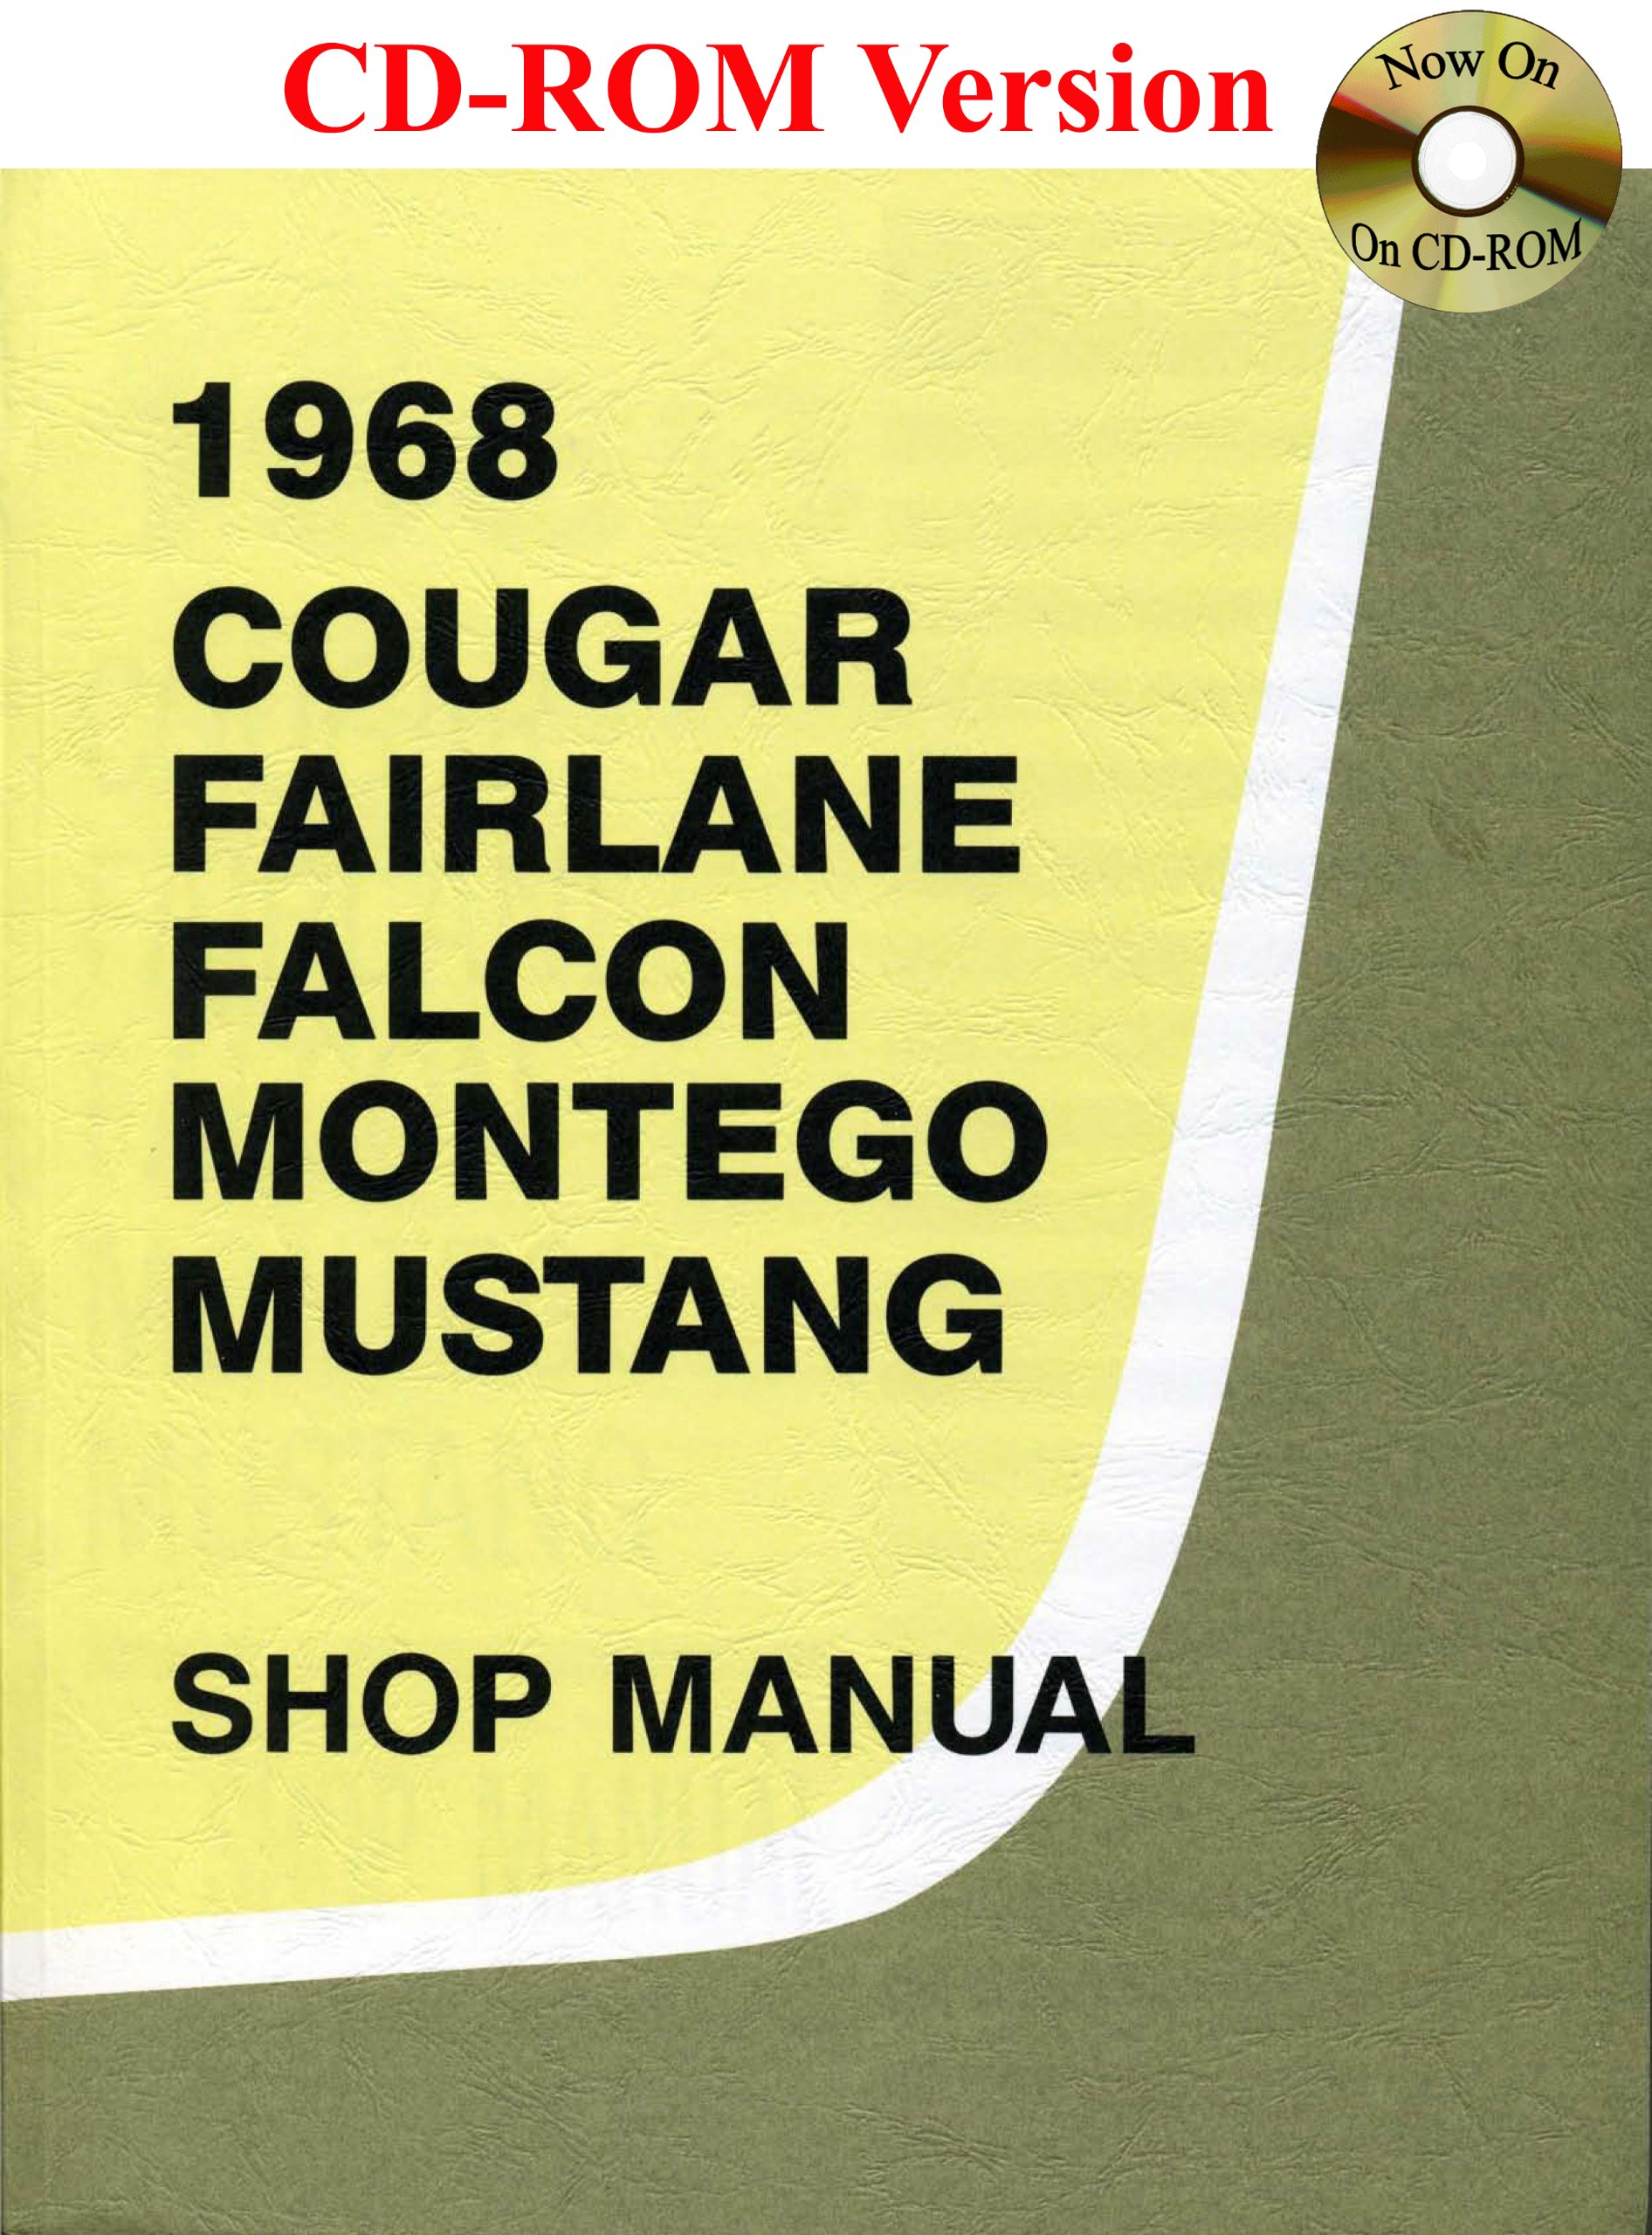 1968 Ford Cougar Fairlane Falcon Montego Mustang Shop Manual Wiring Diagram Motor Company David E Leblanc 9780967321158 Books